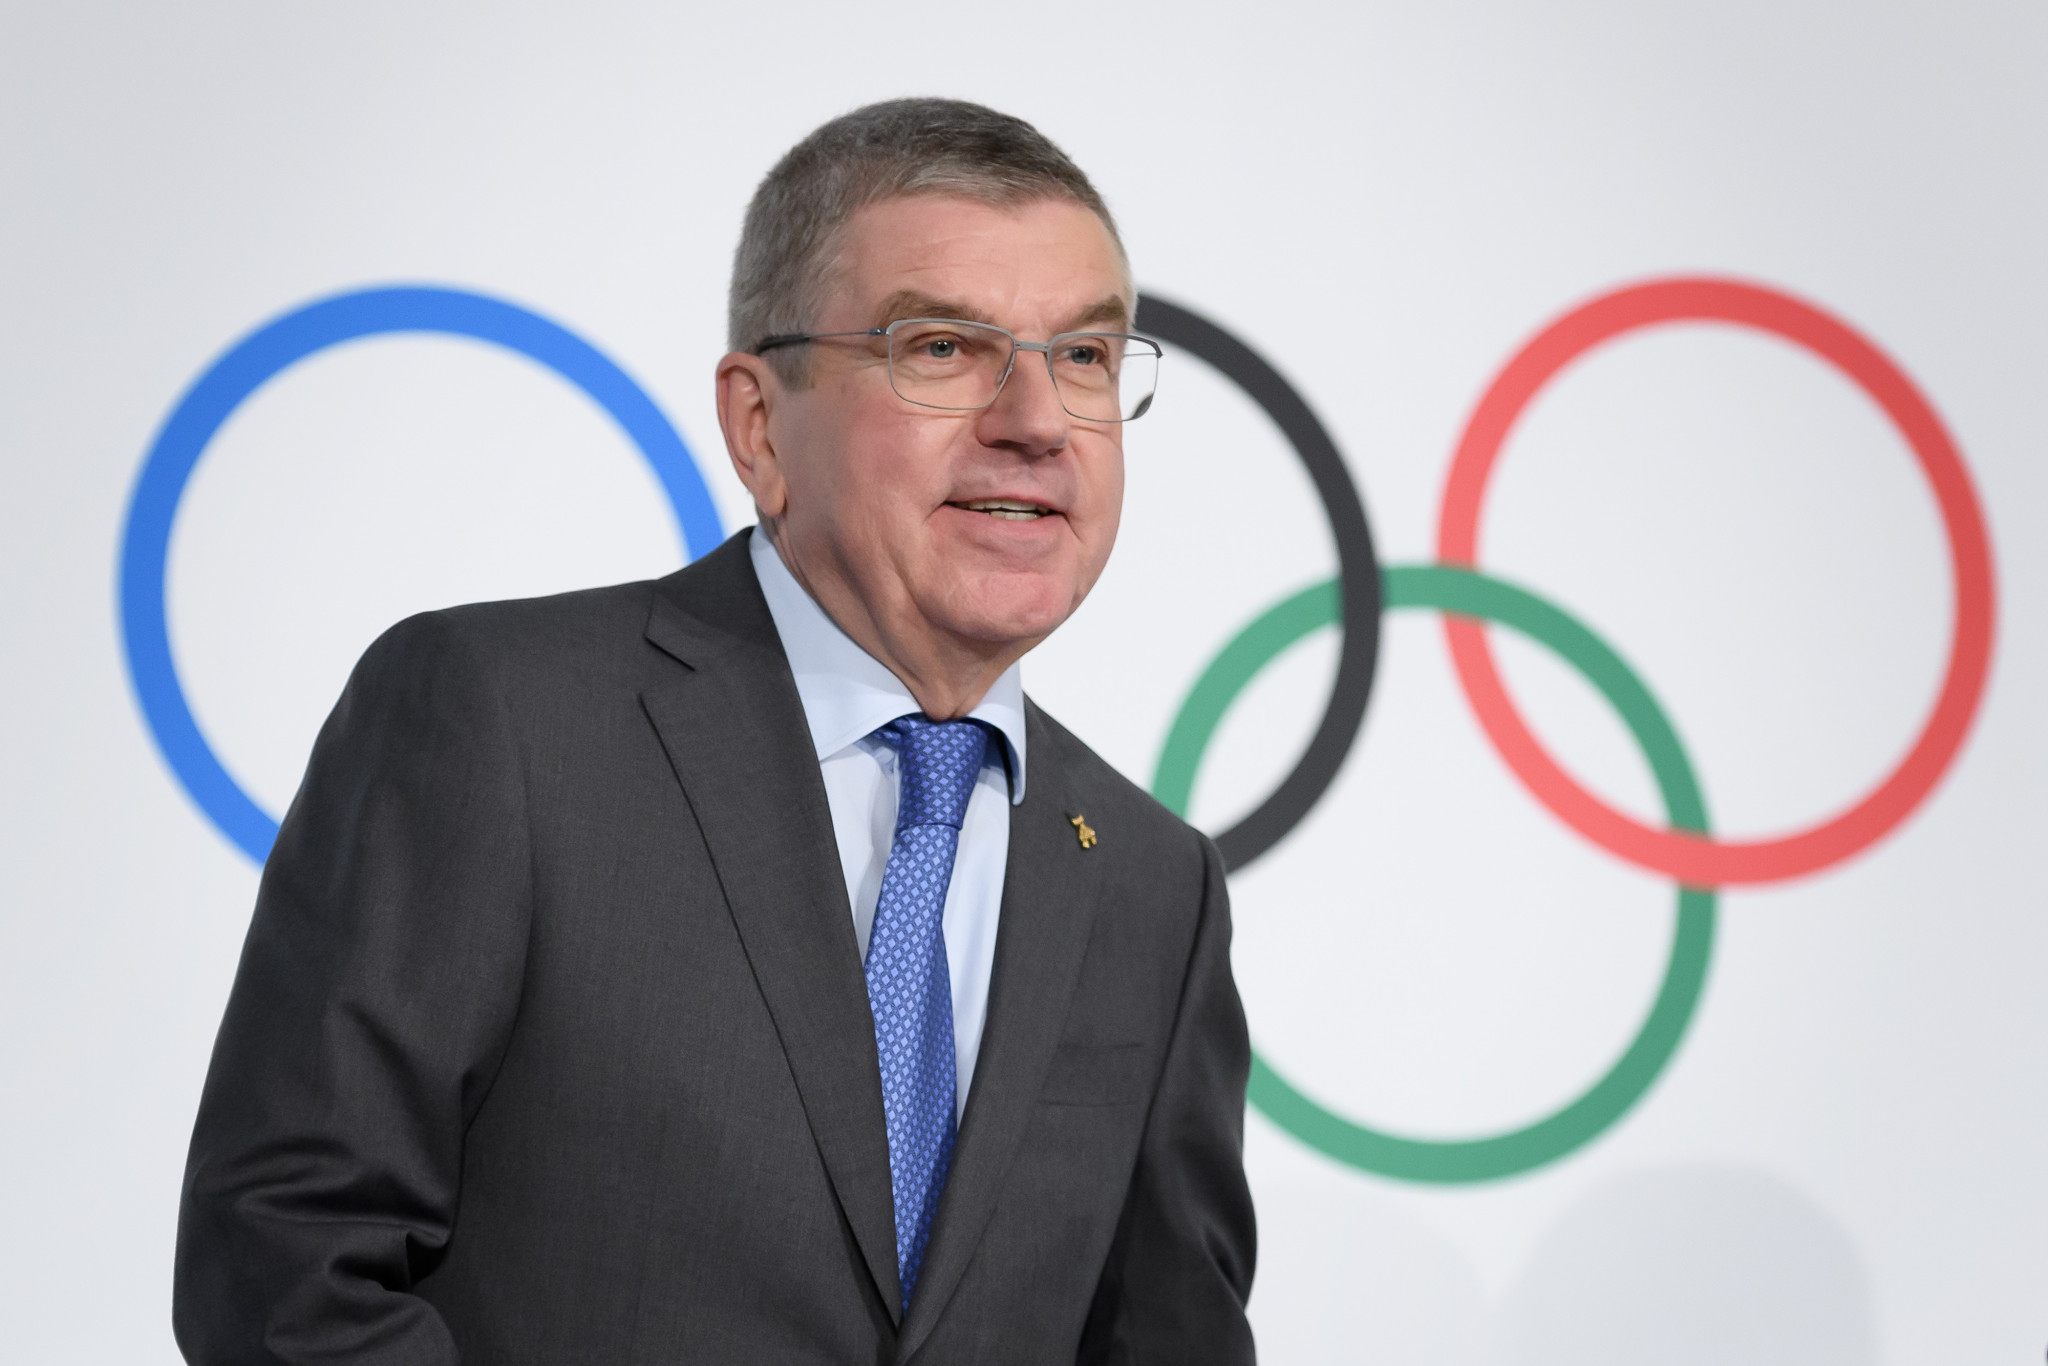 IOC President Thomas Bach said a continued conflict of interest was preventing Sebastian Coe from becoming a member ©Getty Images